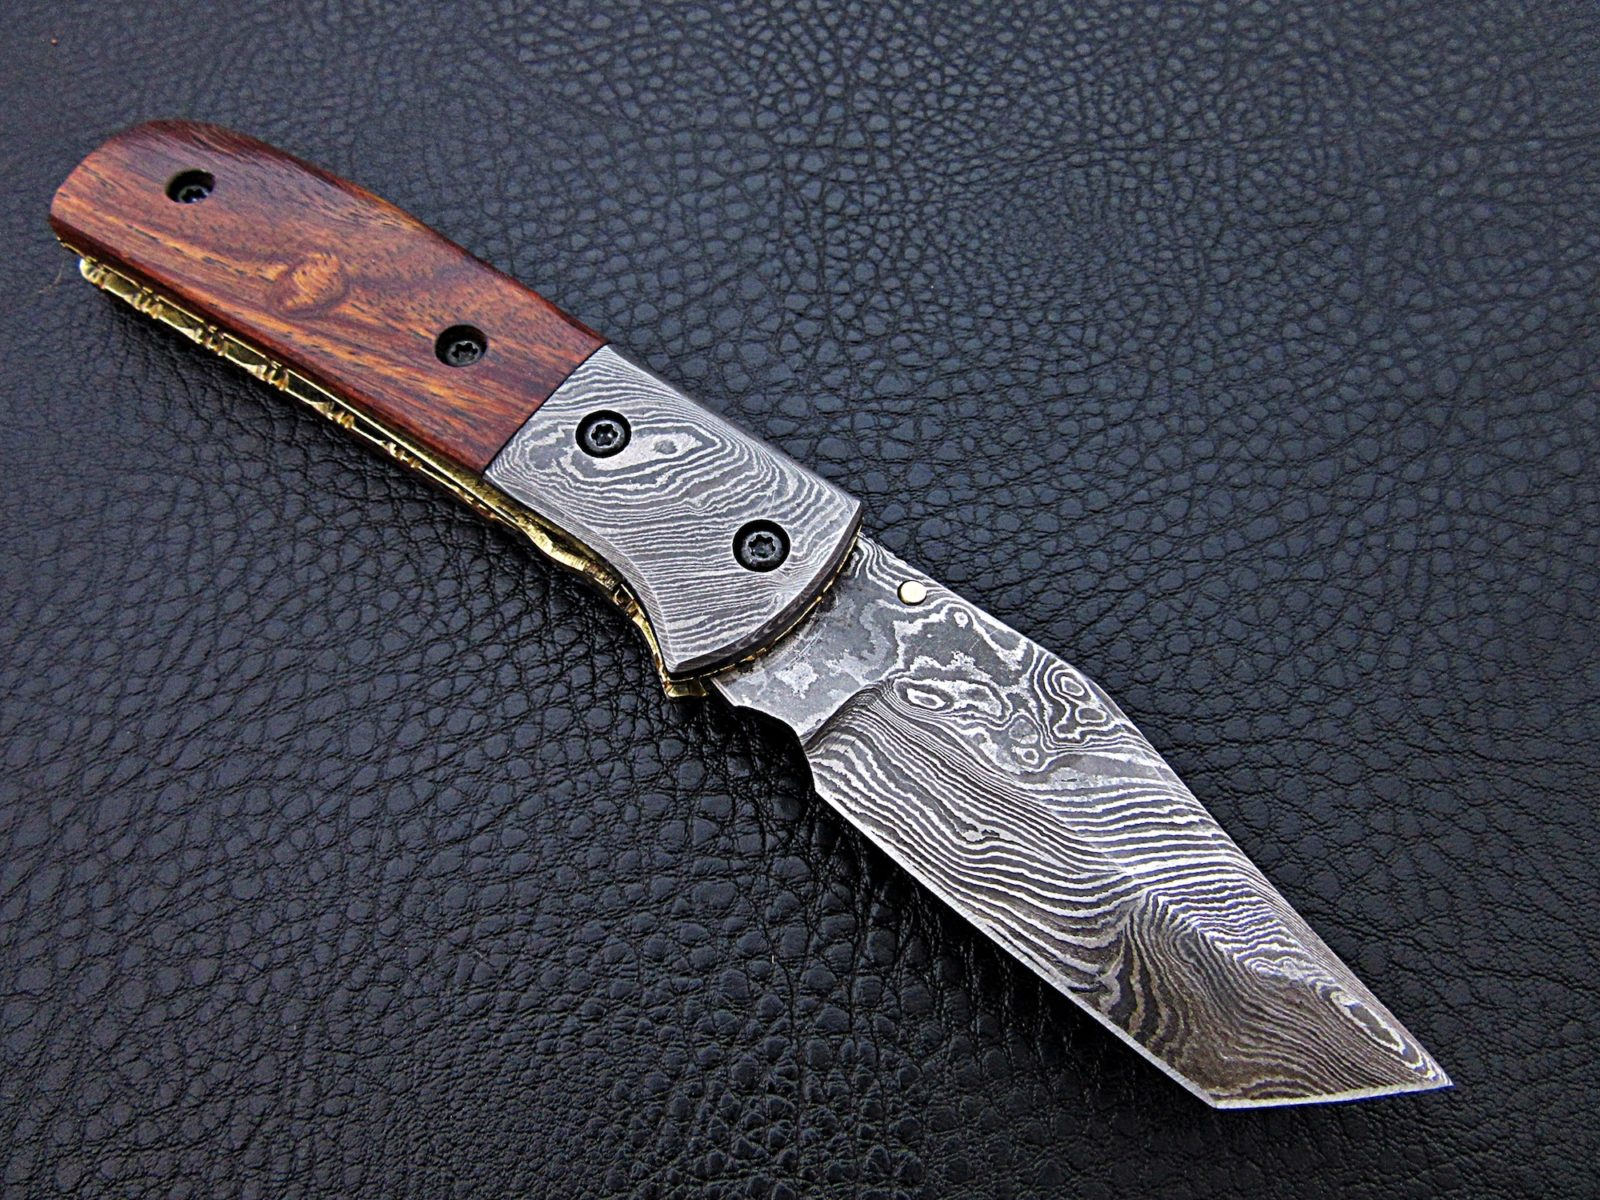 Hand forged Damascus steel folding knives